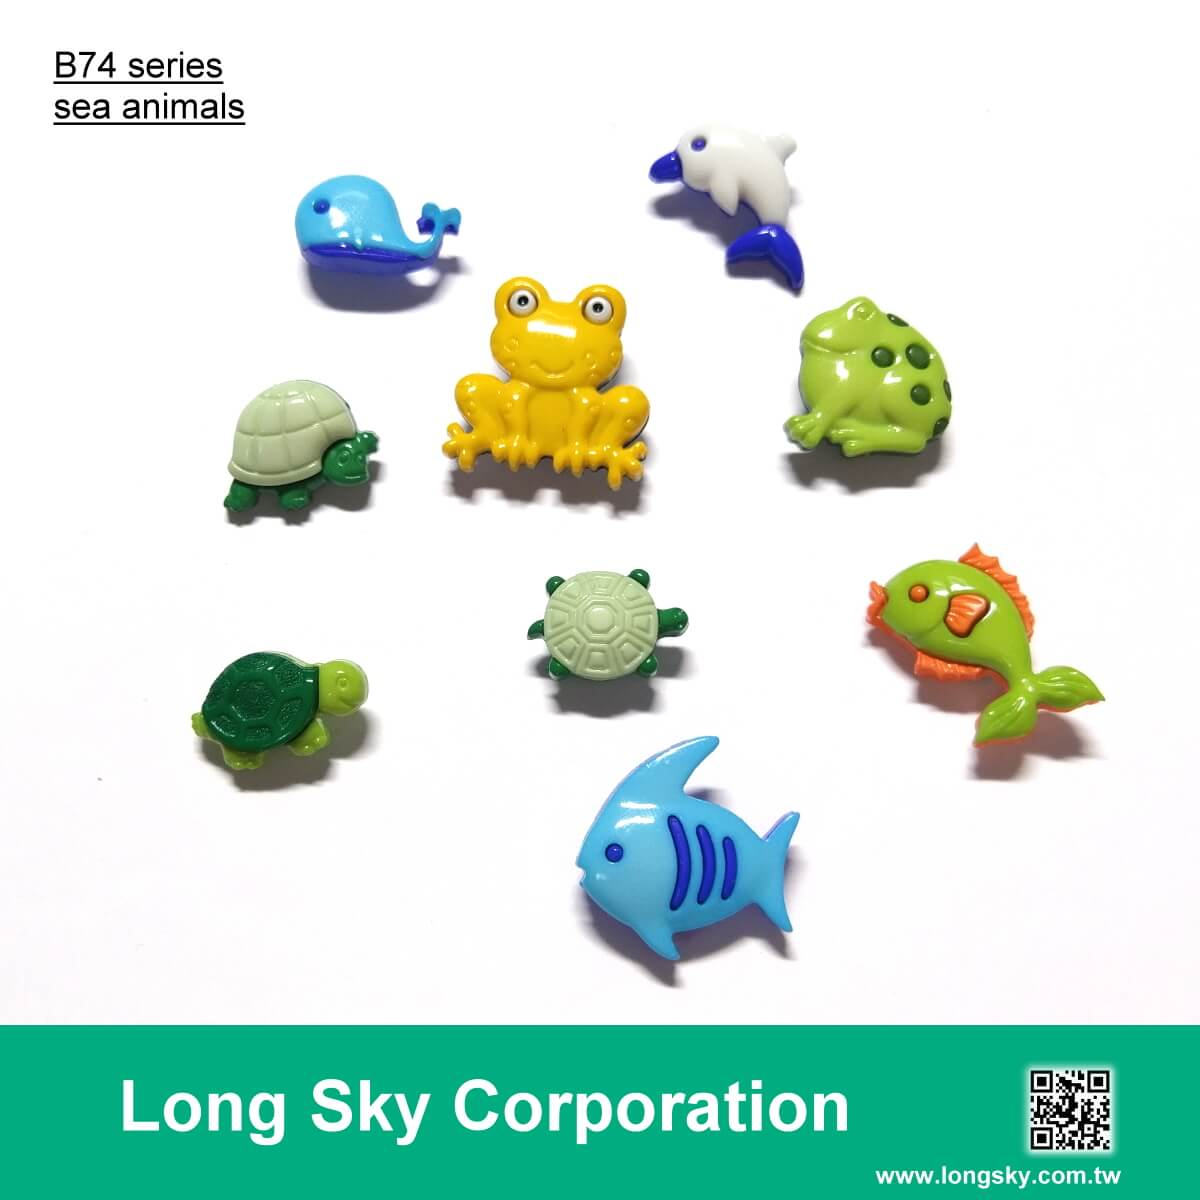 (B74-4-3) Sea animals shape craft buttons with frog, tod, tortoise, turtle, fish, dophin, whale design